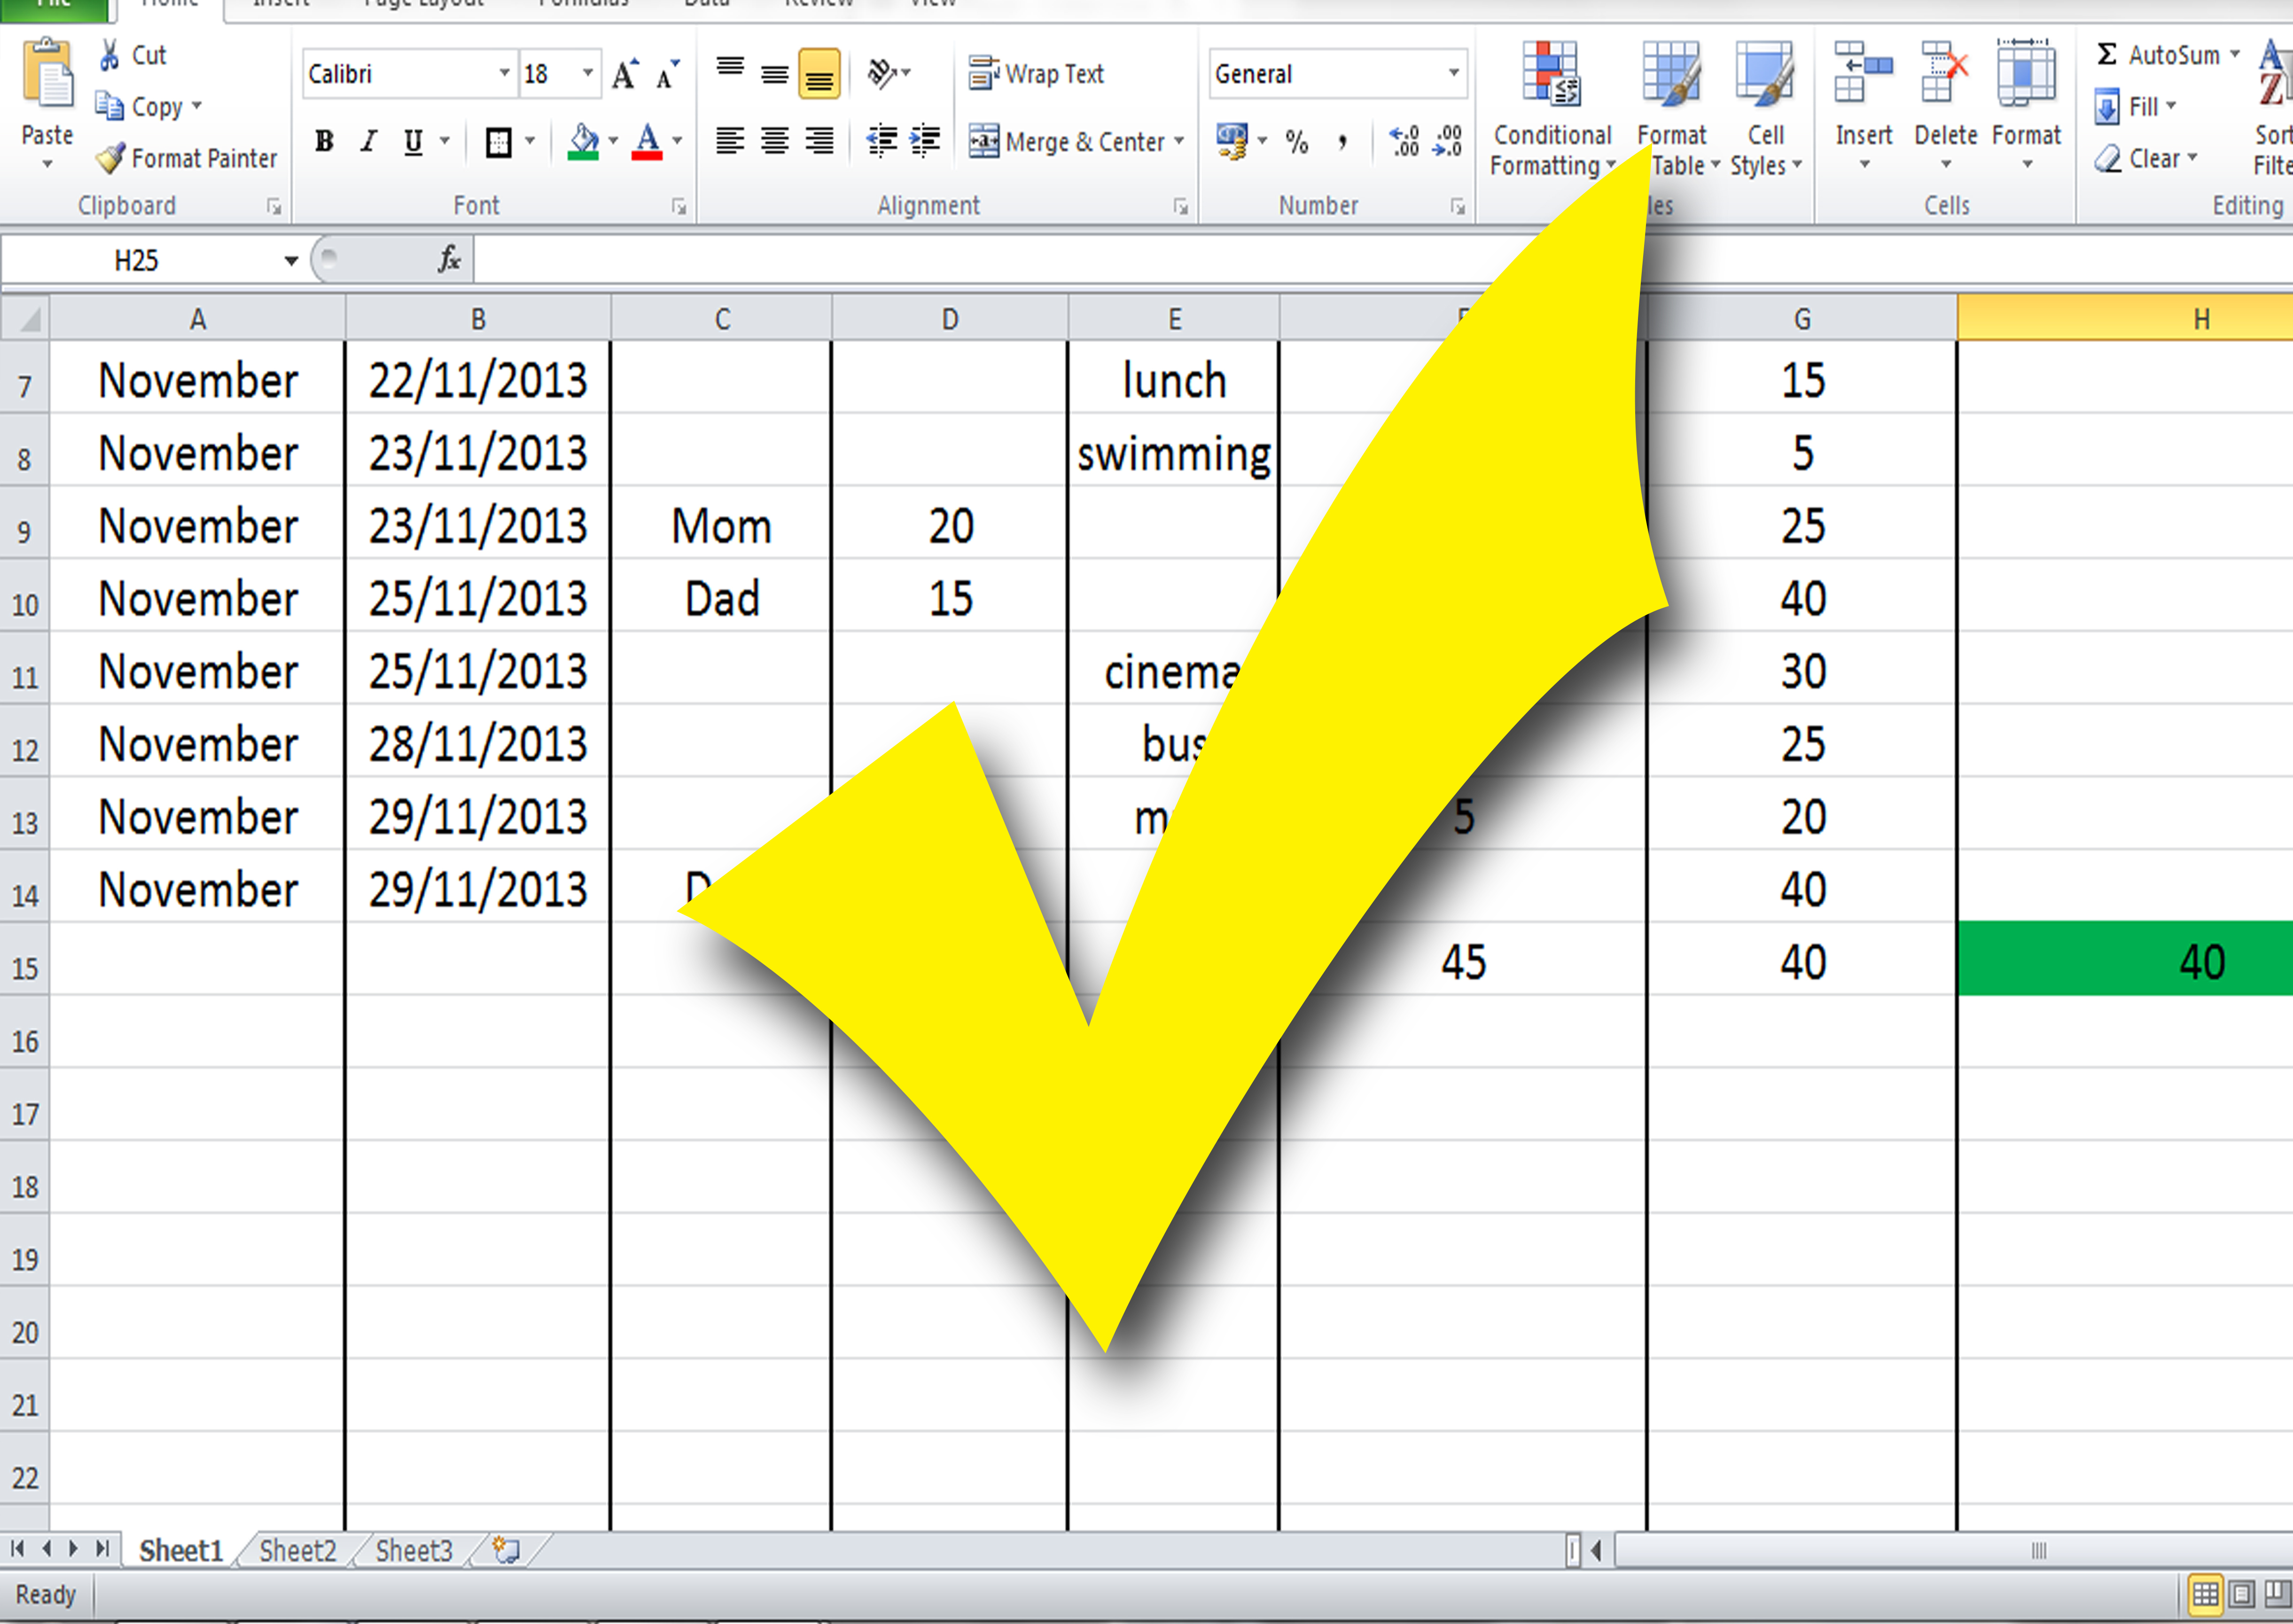 How To Make An Excel Spreadsheet For Bills Regarding How To Build A Budget Spreadsheet Teenagers: 13 Steps